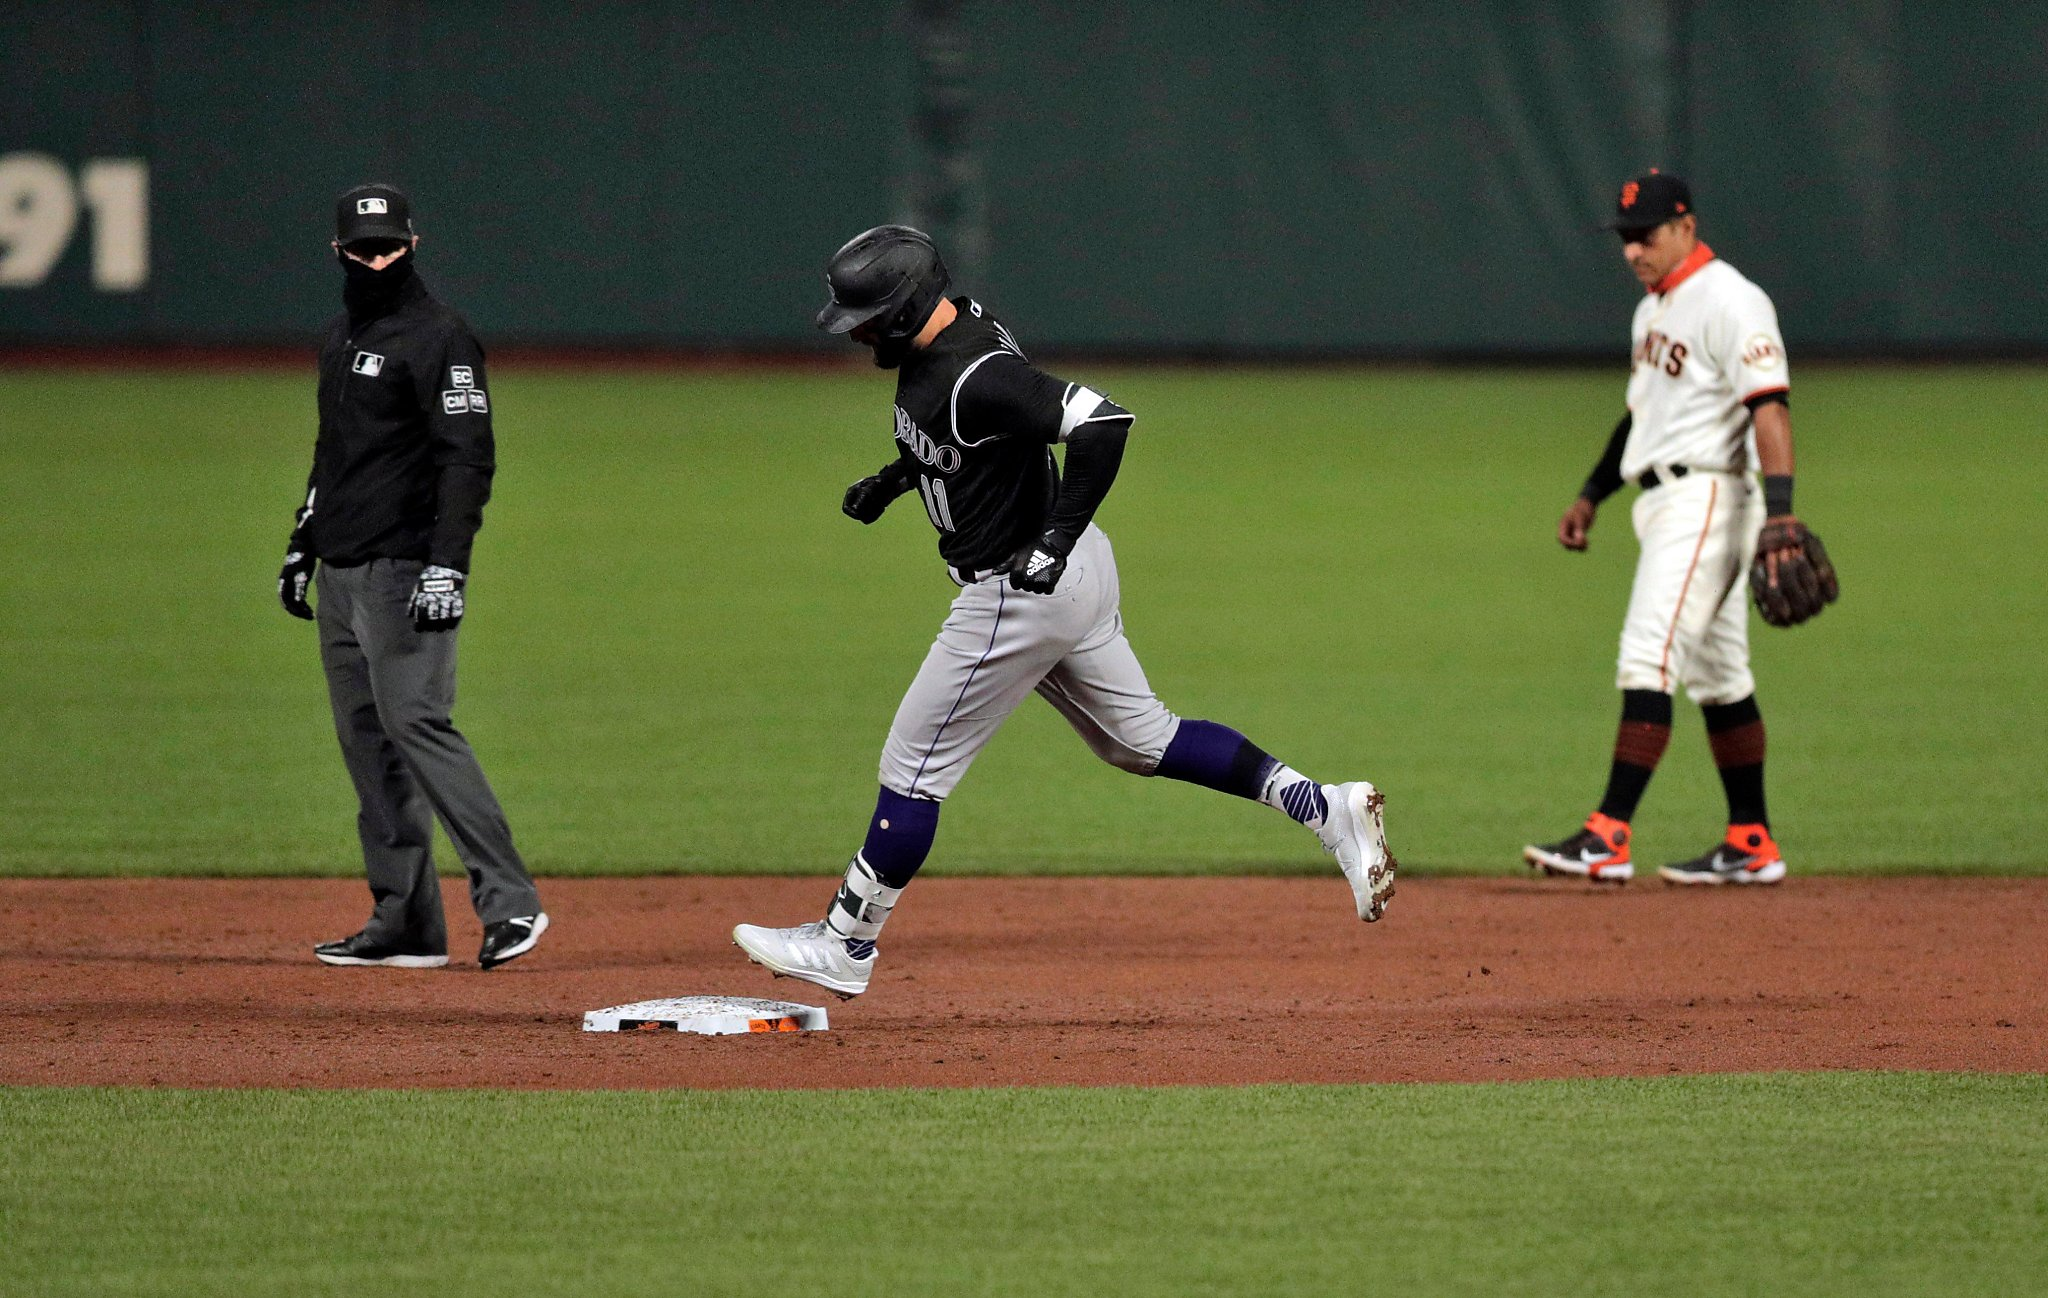 Giants, Johnny Cueto have no fun against Rockies in loss to open final homestand